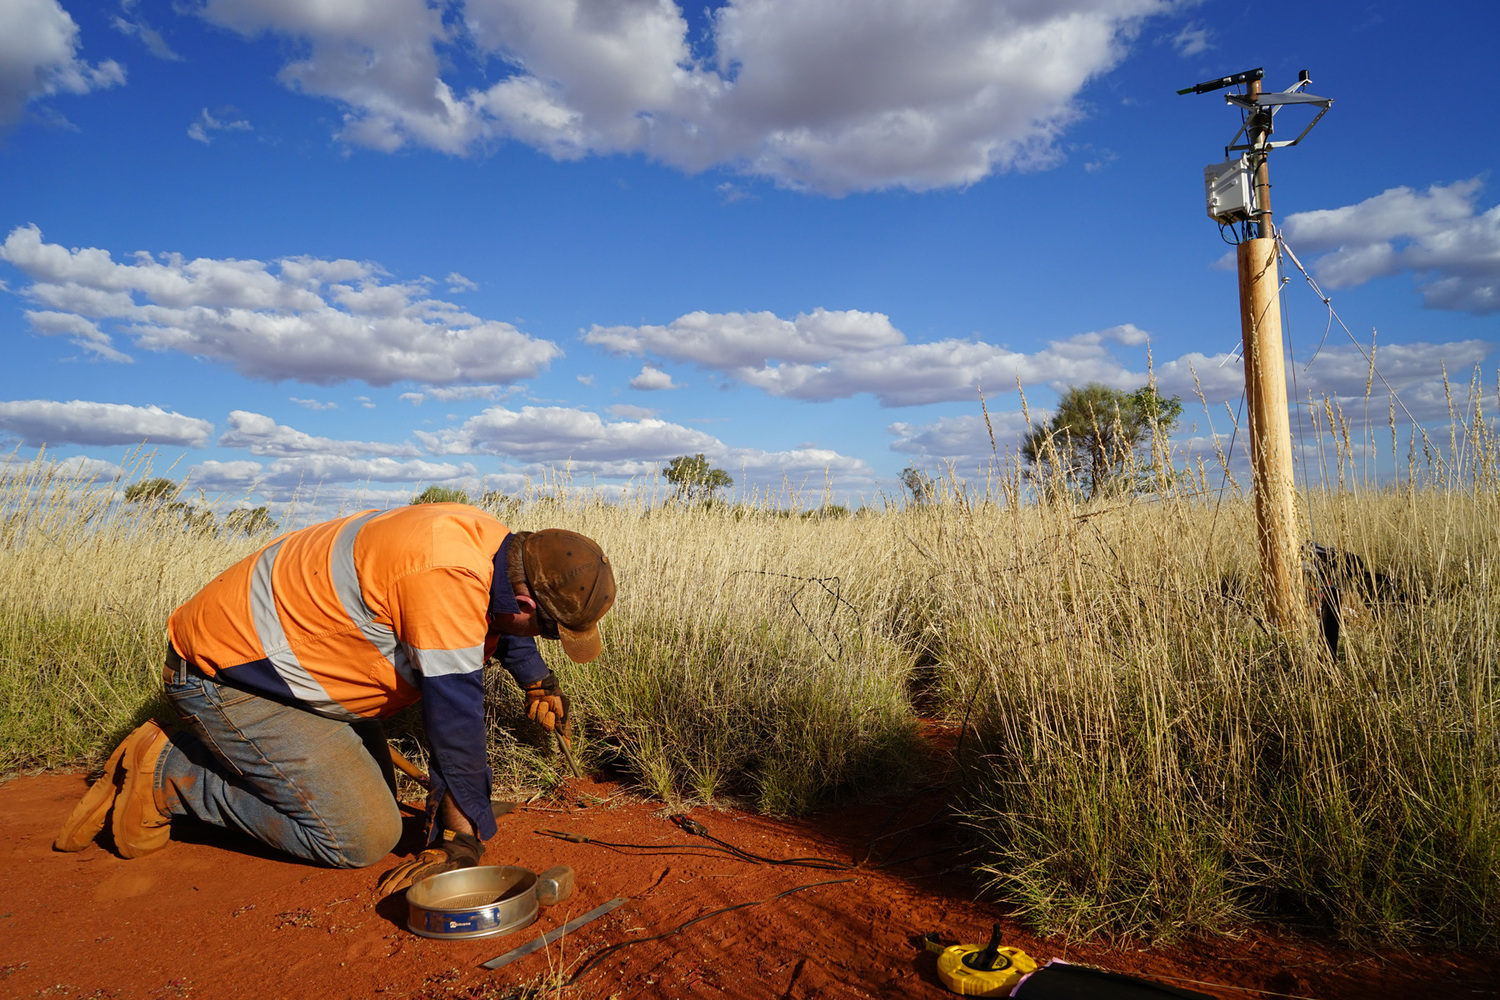 Dr. Todd Erickson from The University of Western Australia installing soil-moisture sensors in the interior of a fairy circle and under Triodia grasses. On the right side is the solar-driven weather station which recorded the data automatically during summer and winter.